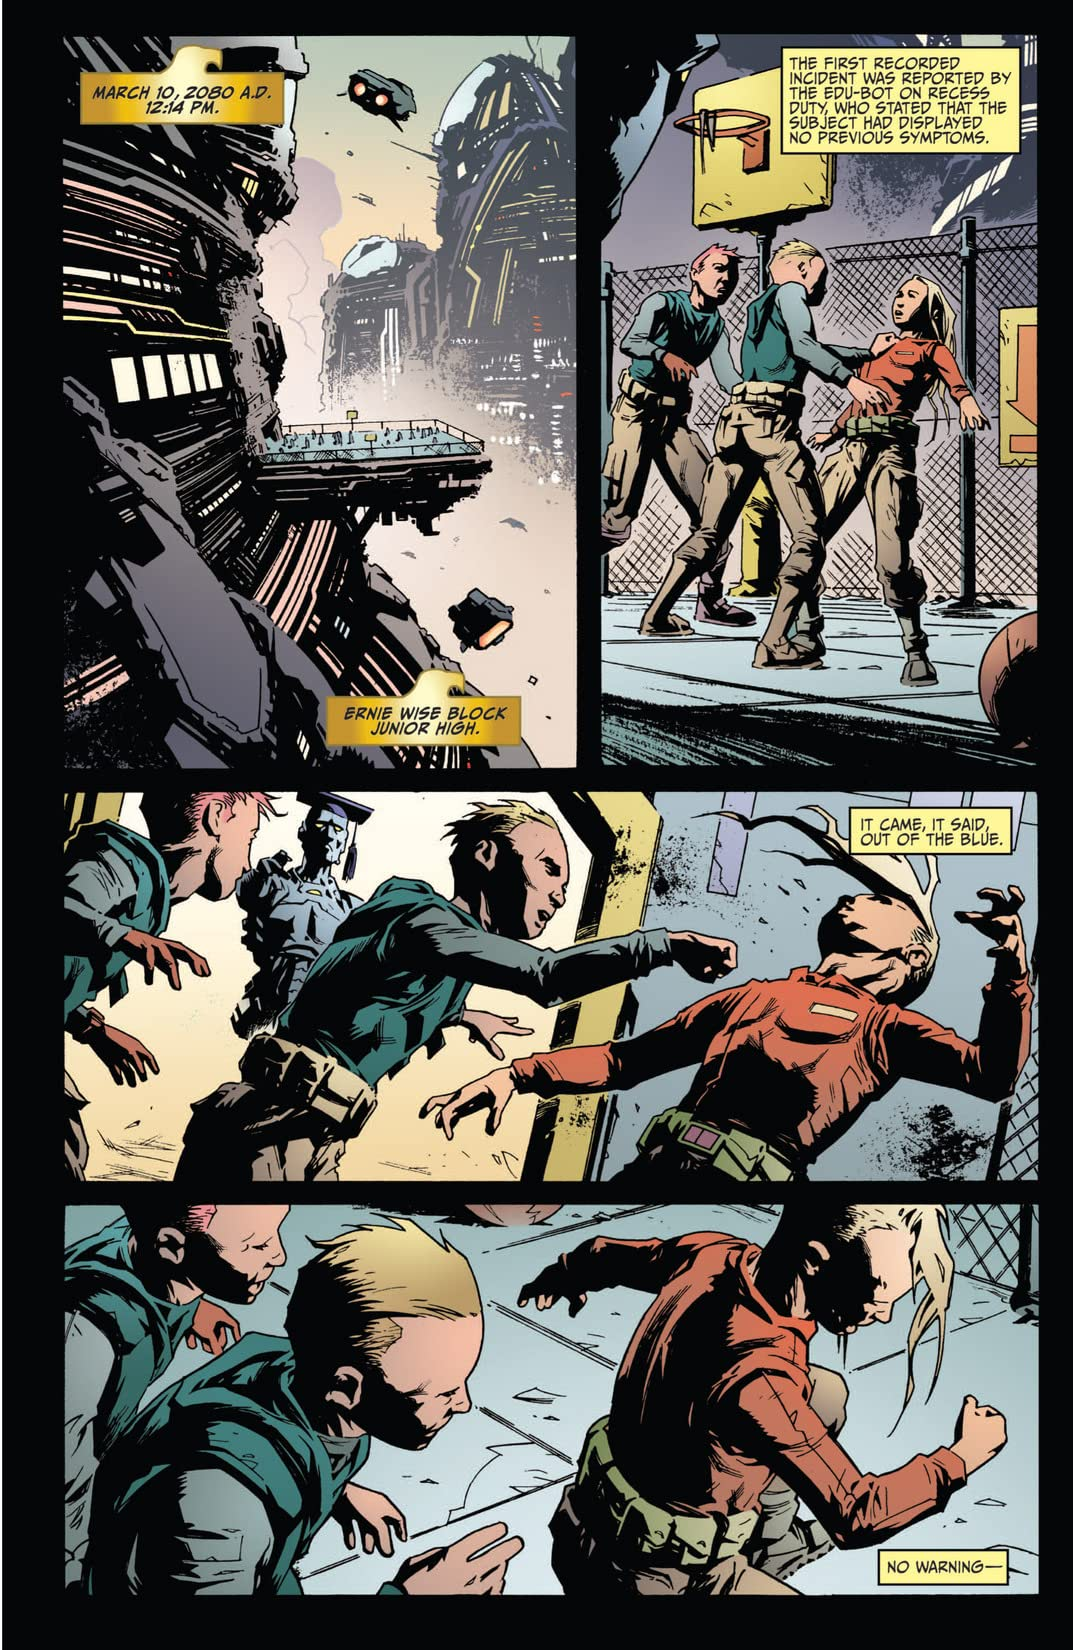 Judge Dredd: Year One #1